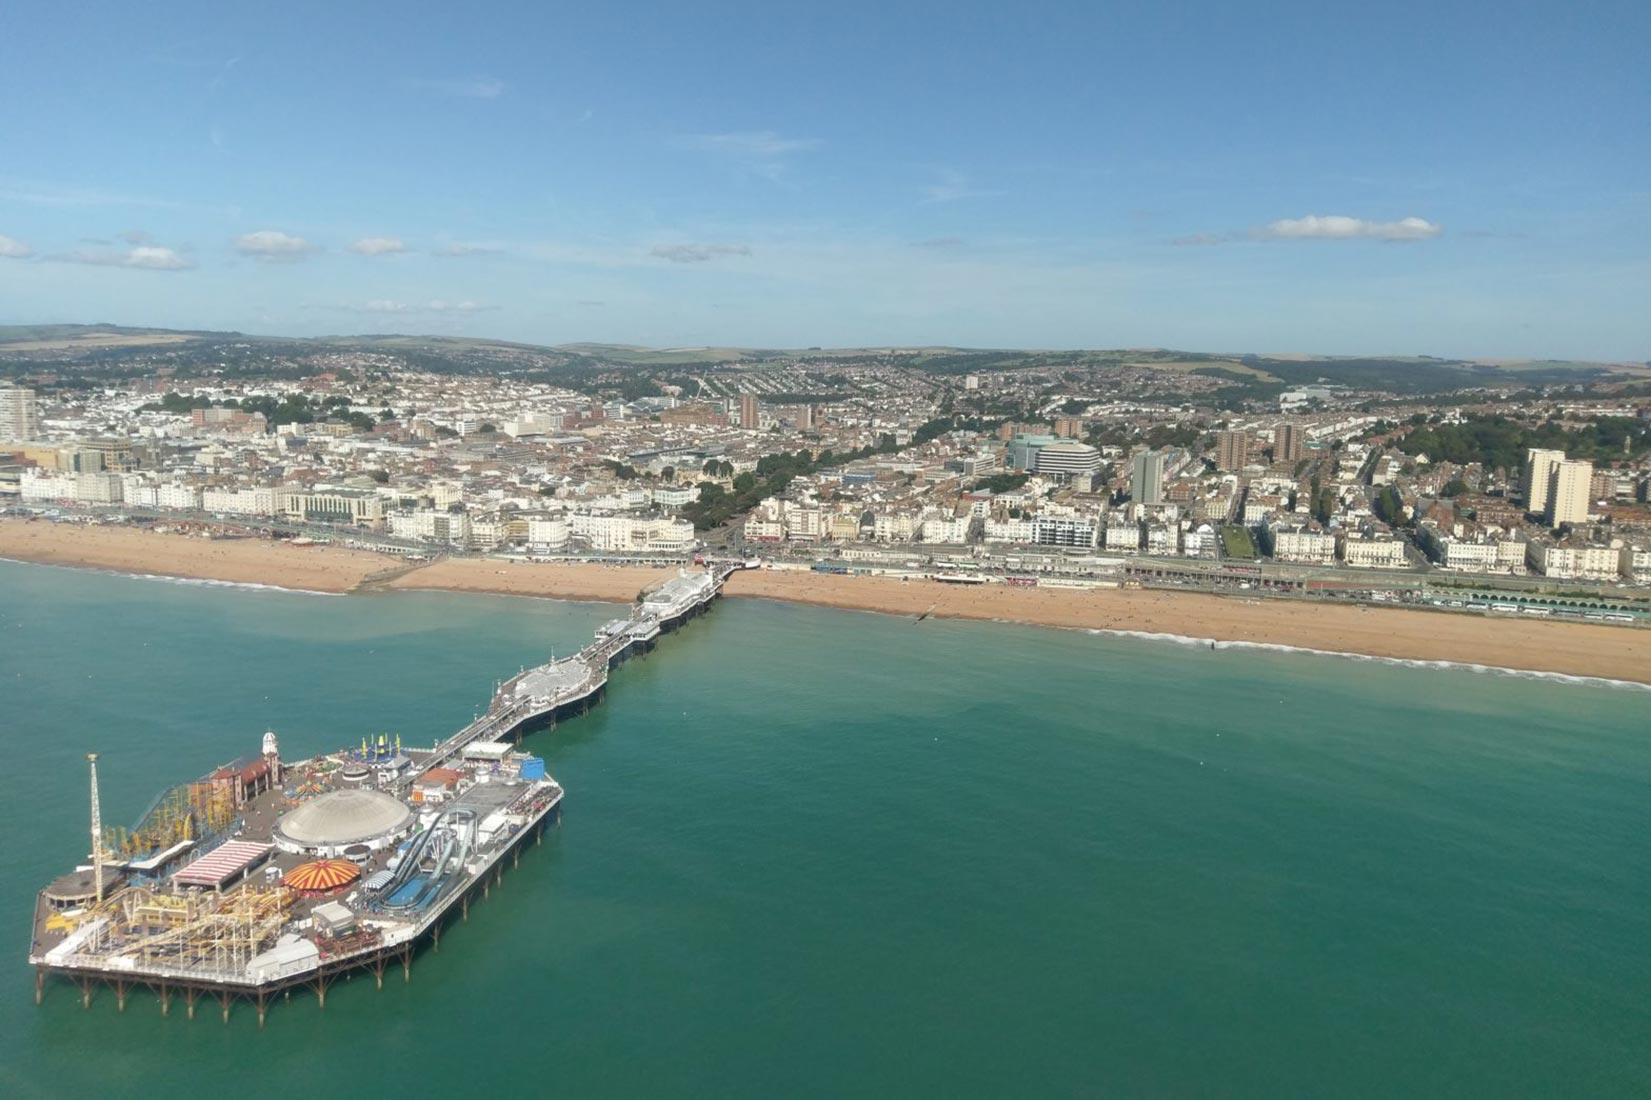 Brighton seafront from the air